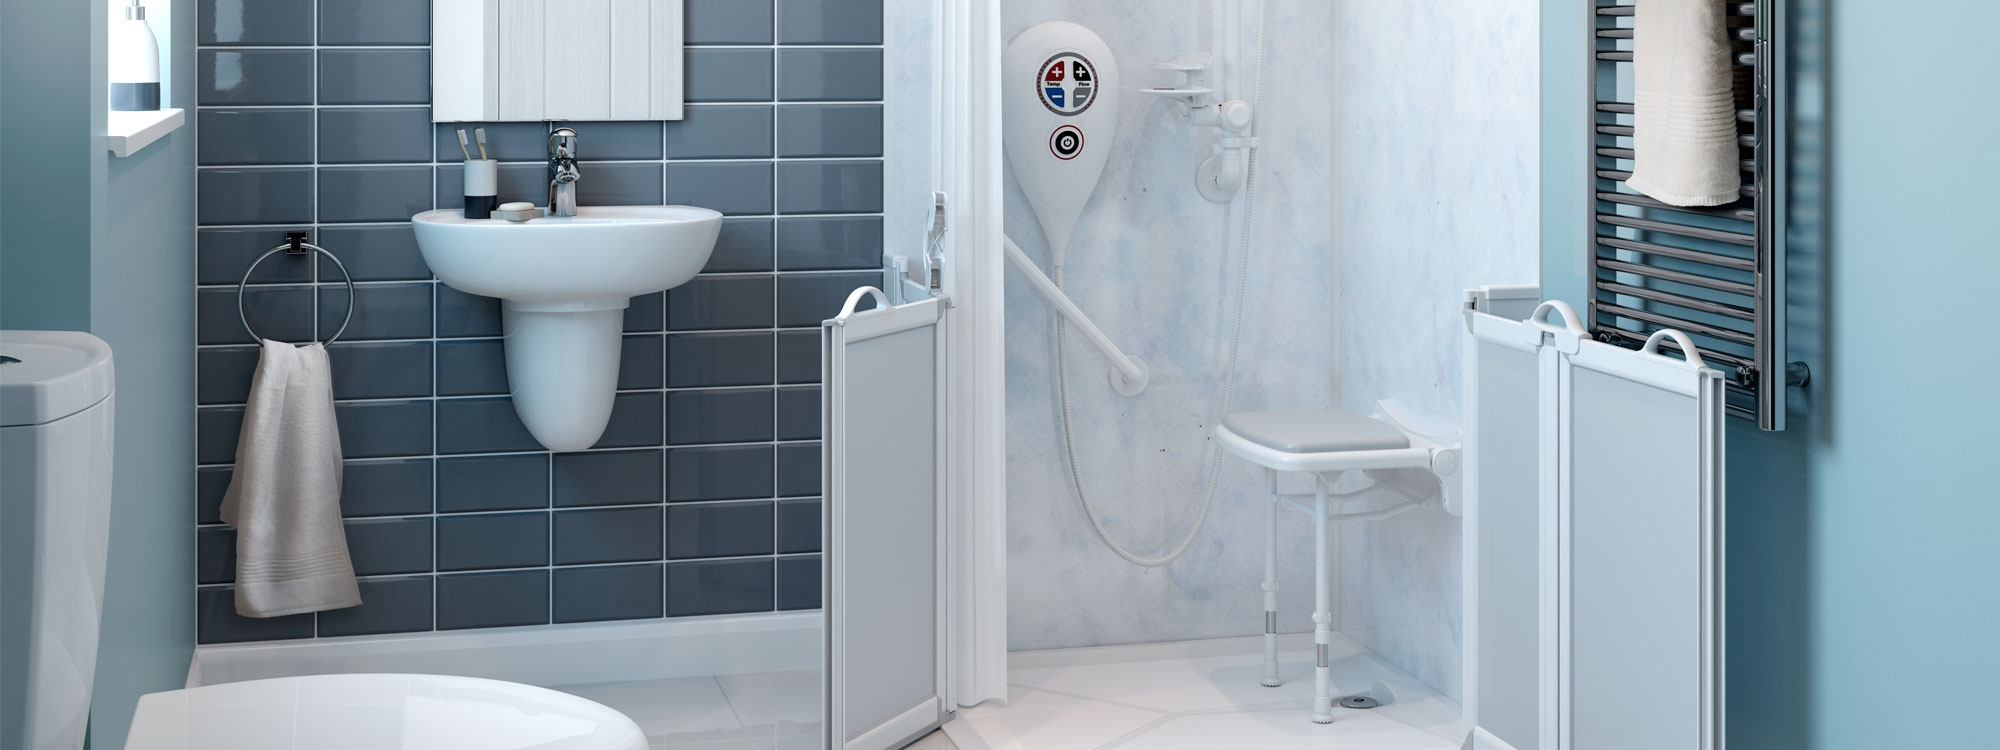 Bespoke Assisted Disabled Showers Design Fit More Ability